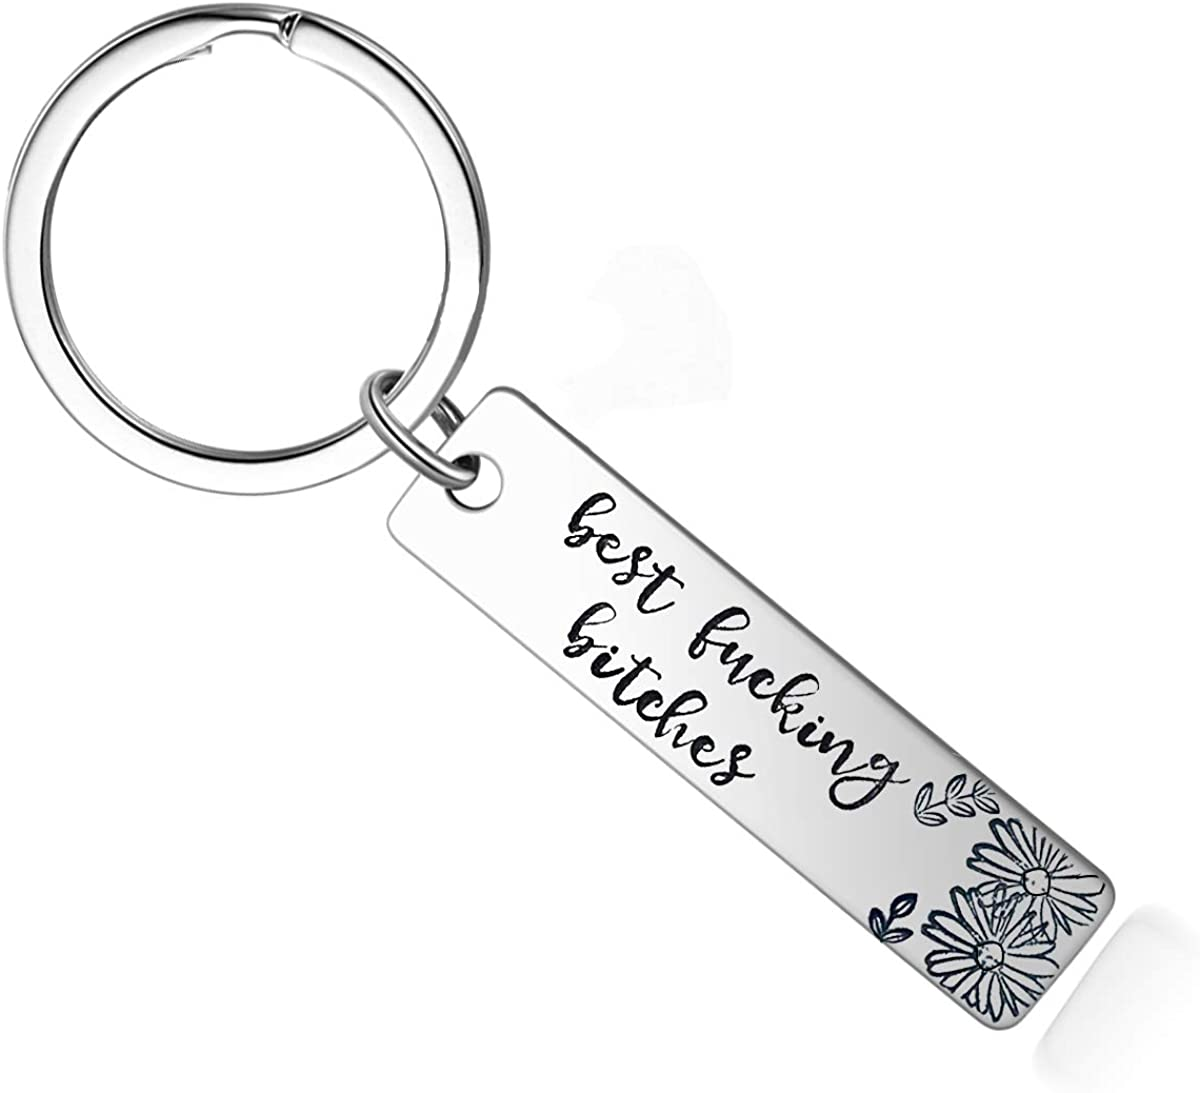 N /A Best Friend Keychain - Best Funking Bitches Keyring Gifts for Women Teens Sisters, Birthday Gifts for Best Friend BFF Jewelry, Silver, Medium